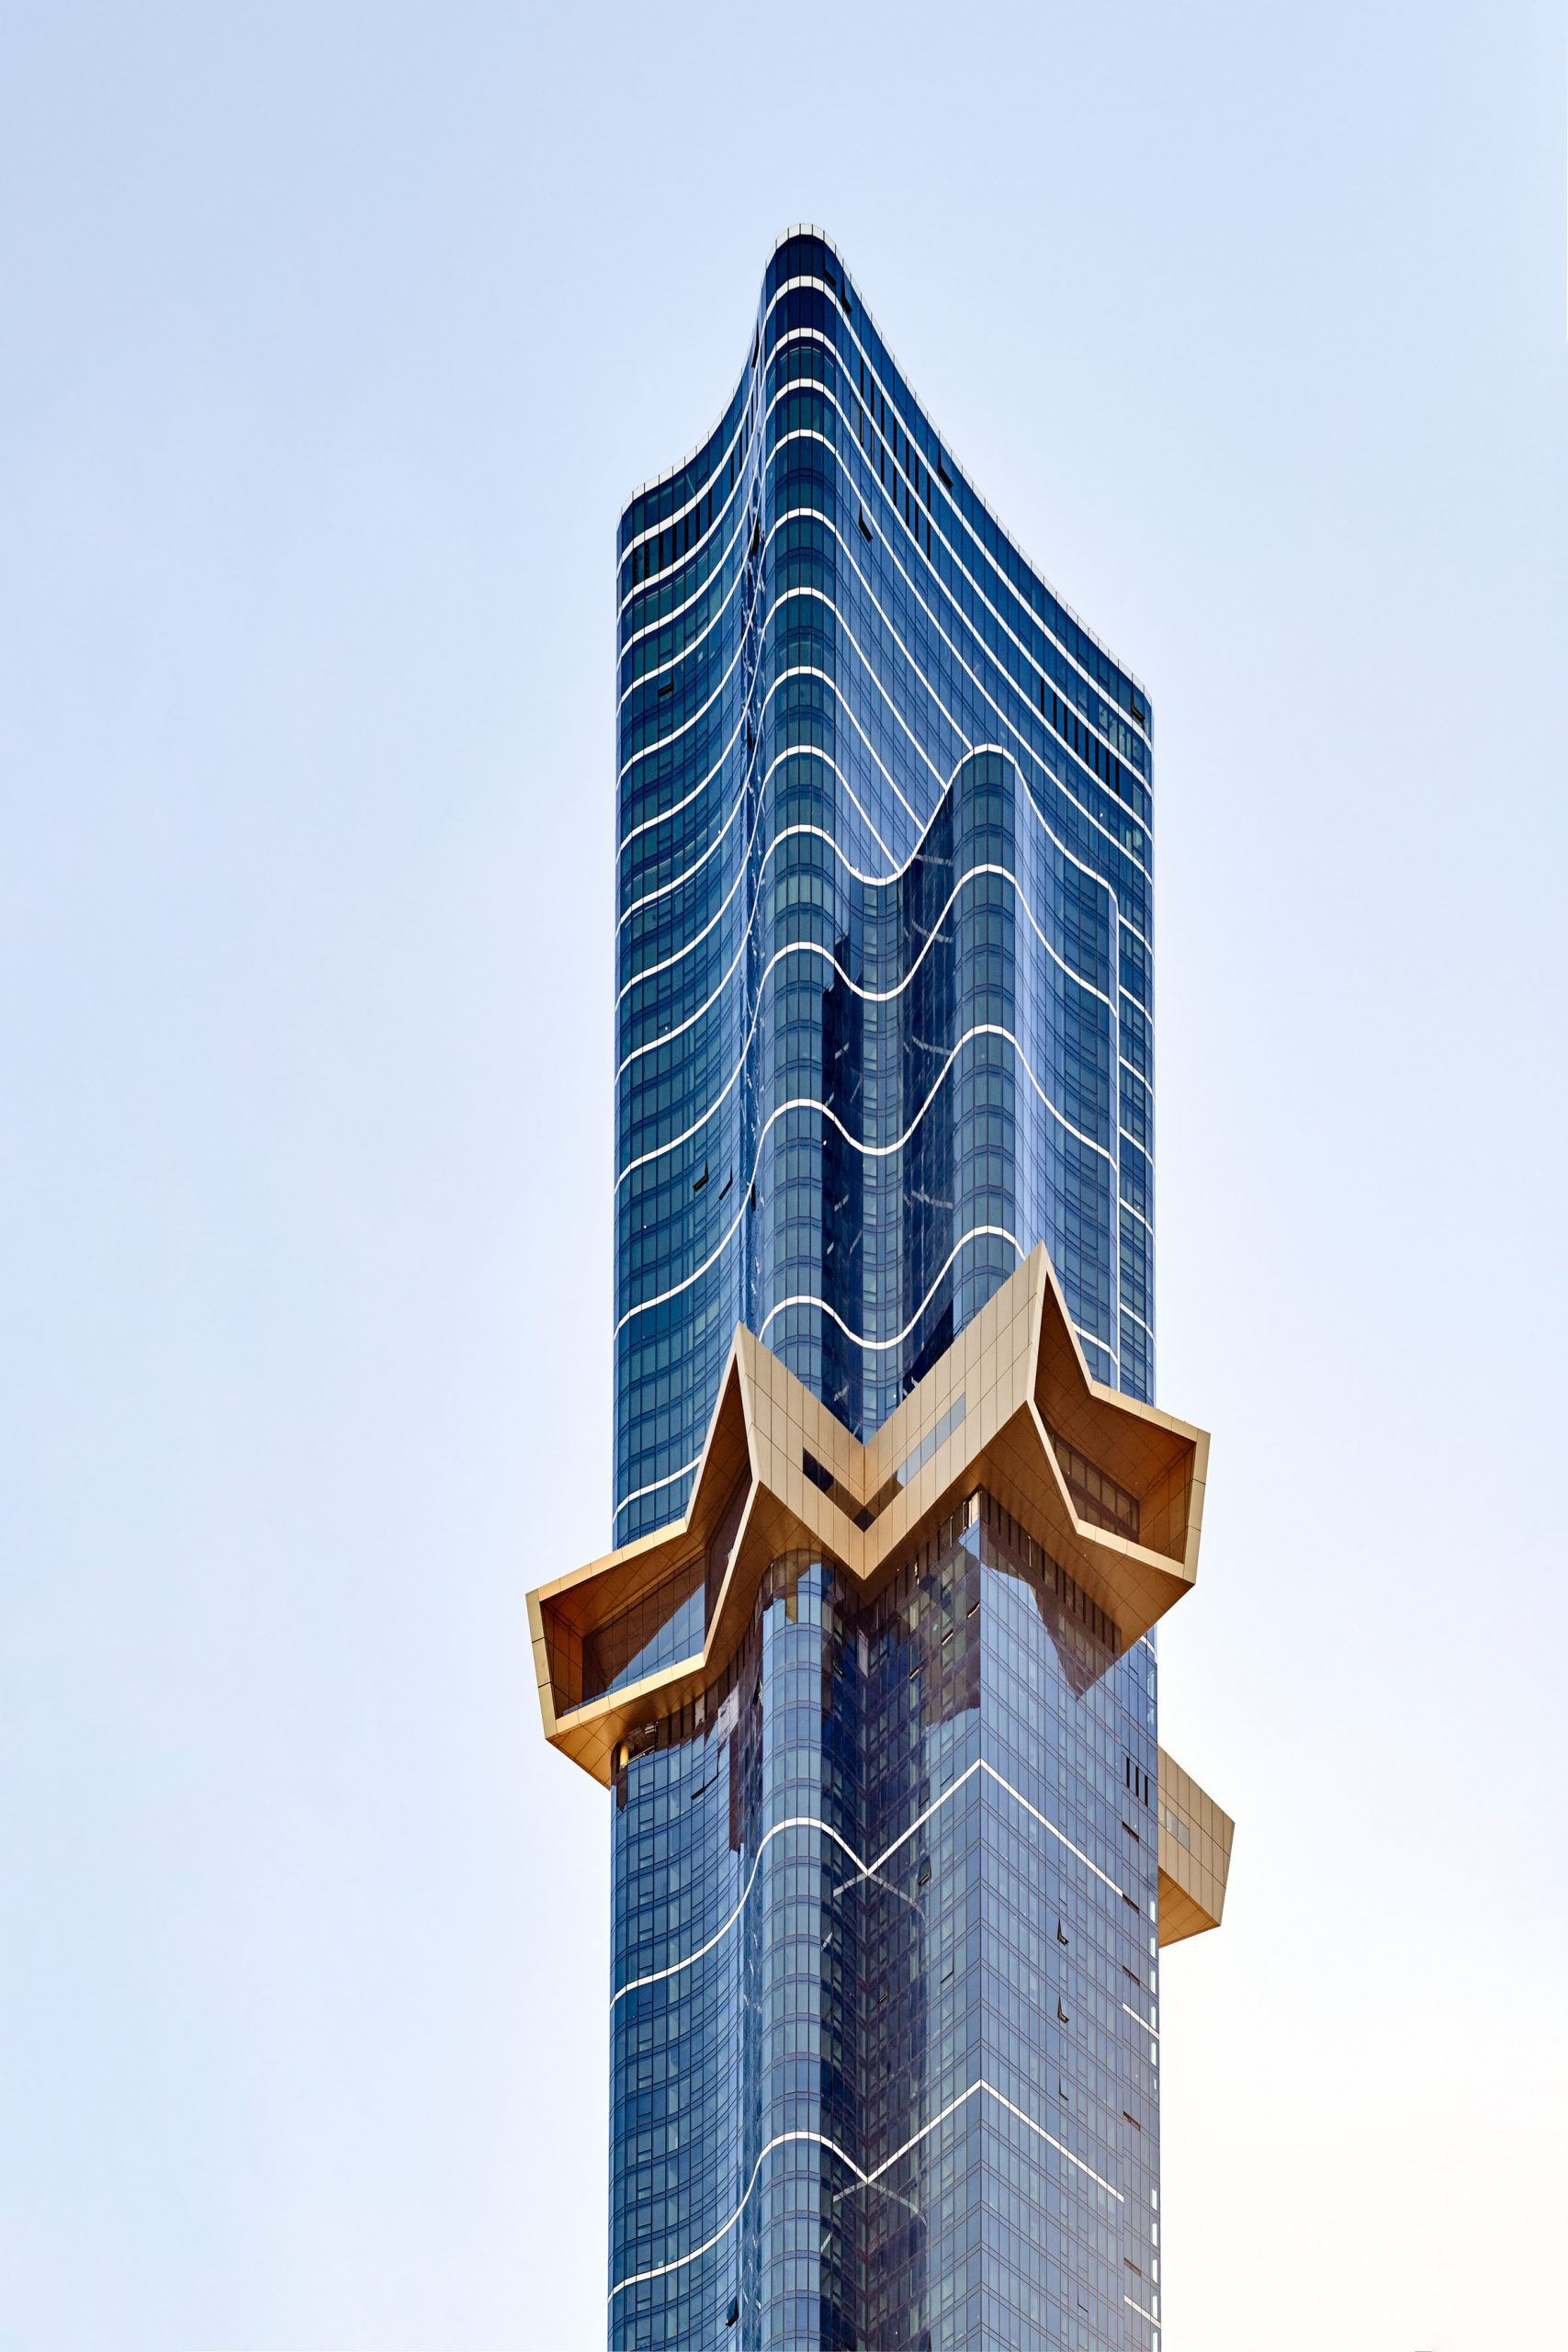 A golden star protruding from a skyscraper